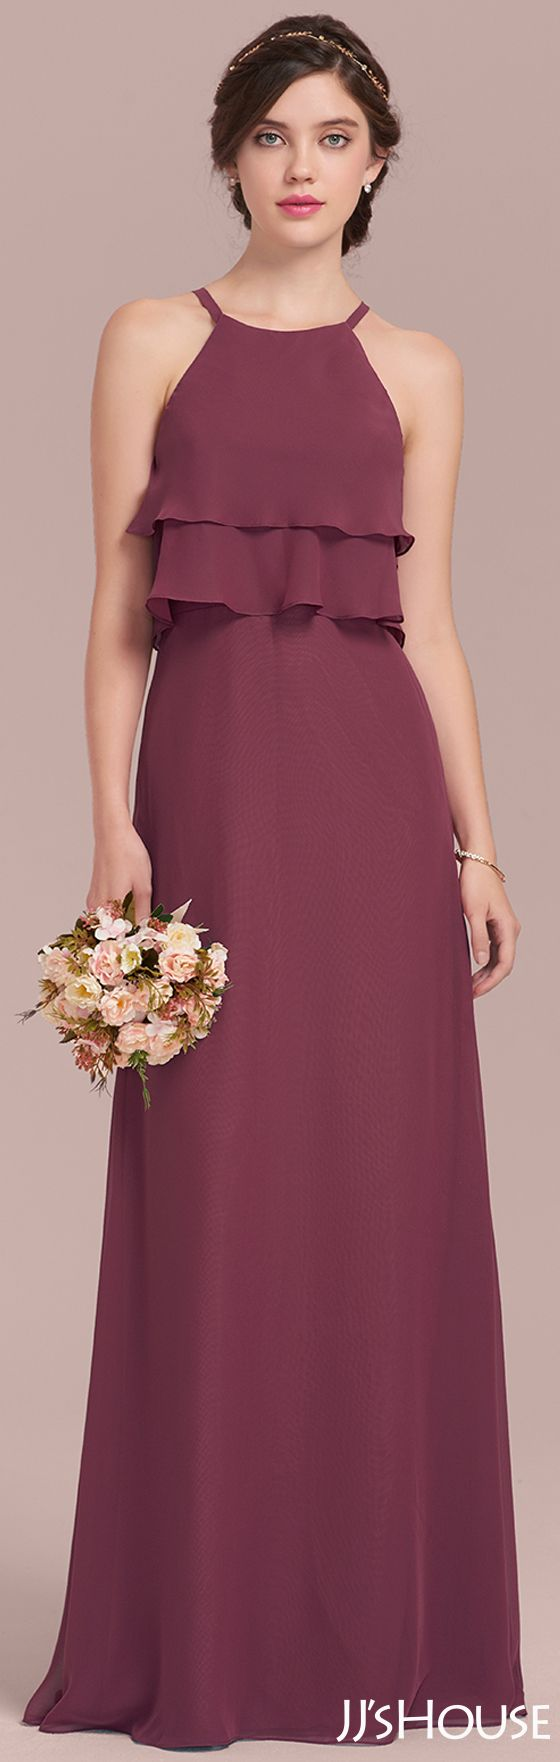 A-Line/Princess Scoop Neck Floor-Length Chiffon Bridesmaid Dress ...